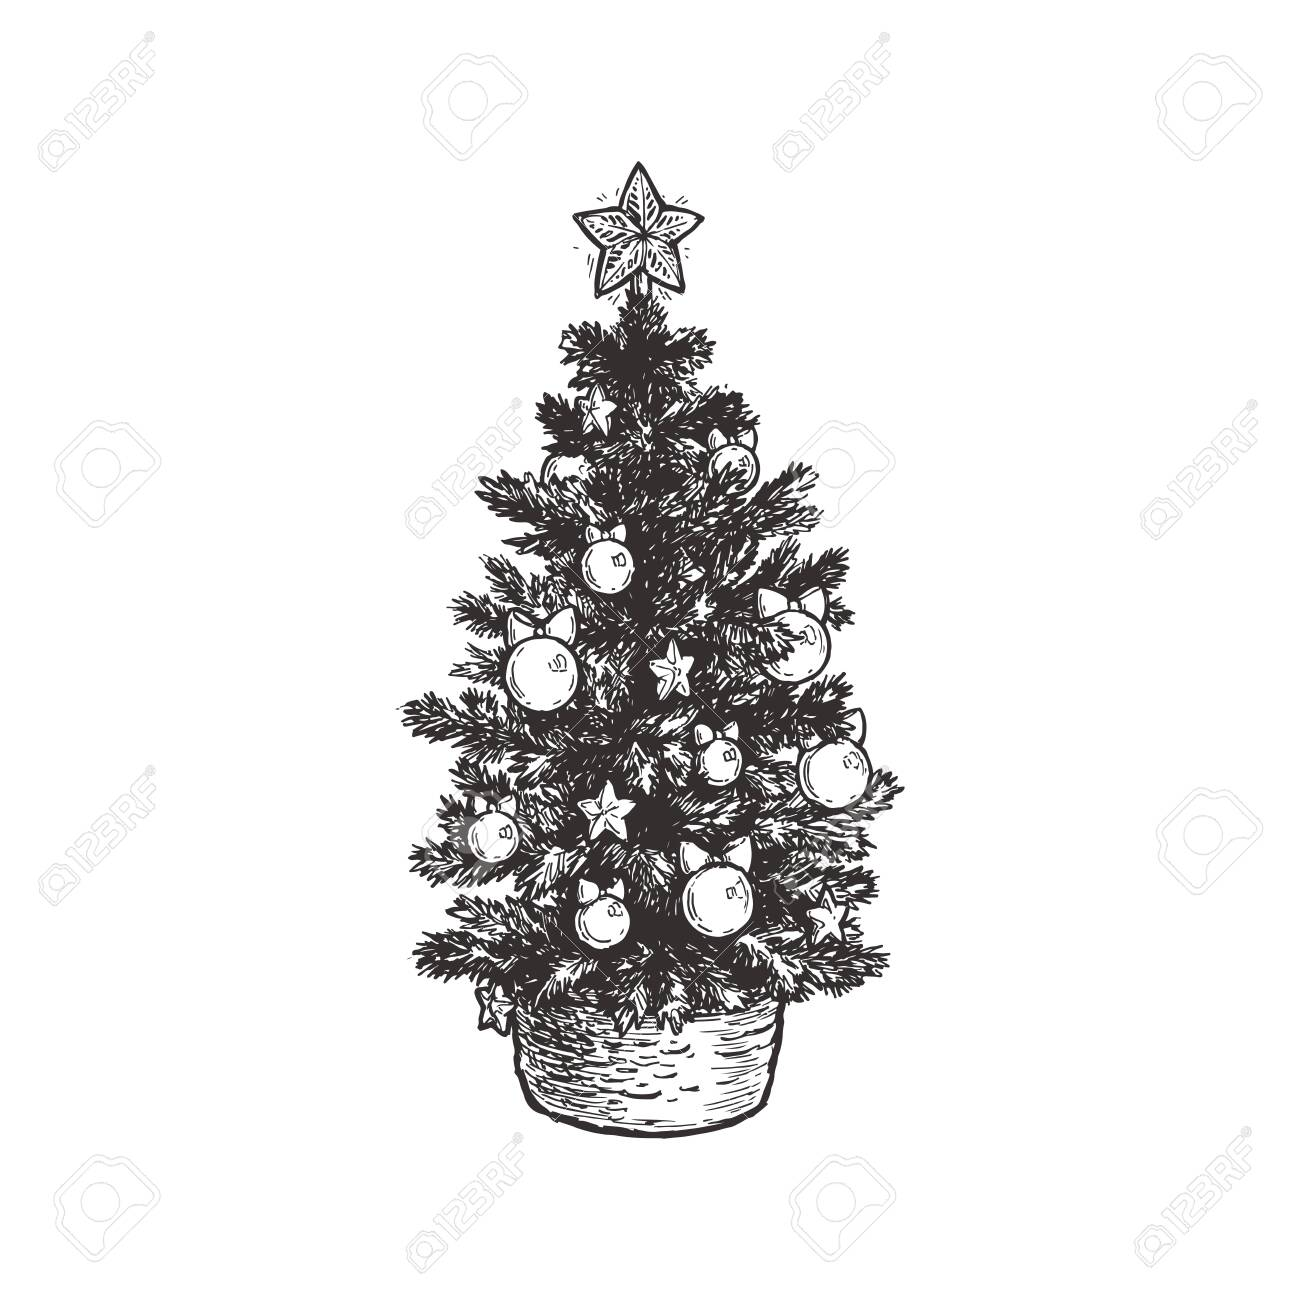 Vector Vintage Drawing With Christmas Tree In Basket Hand Drawn Royalty Free Cliparts Vectors And Stock Illustration Image 135442718